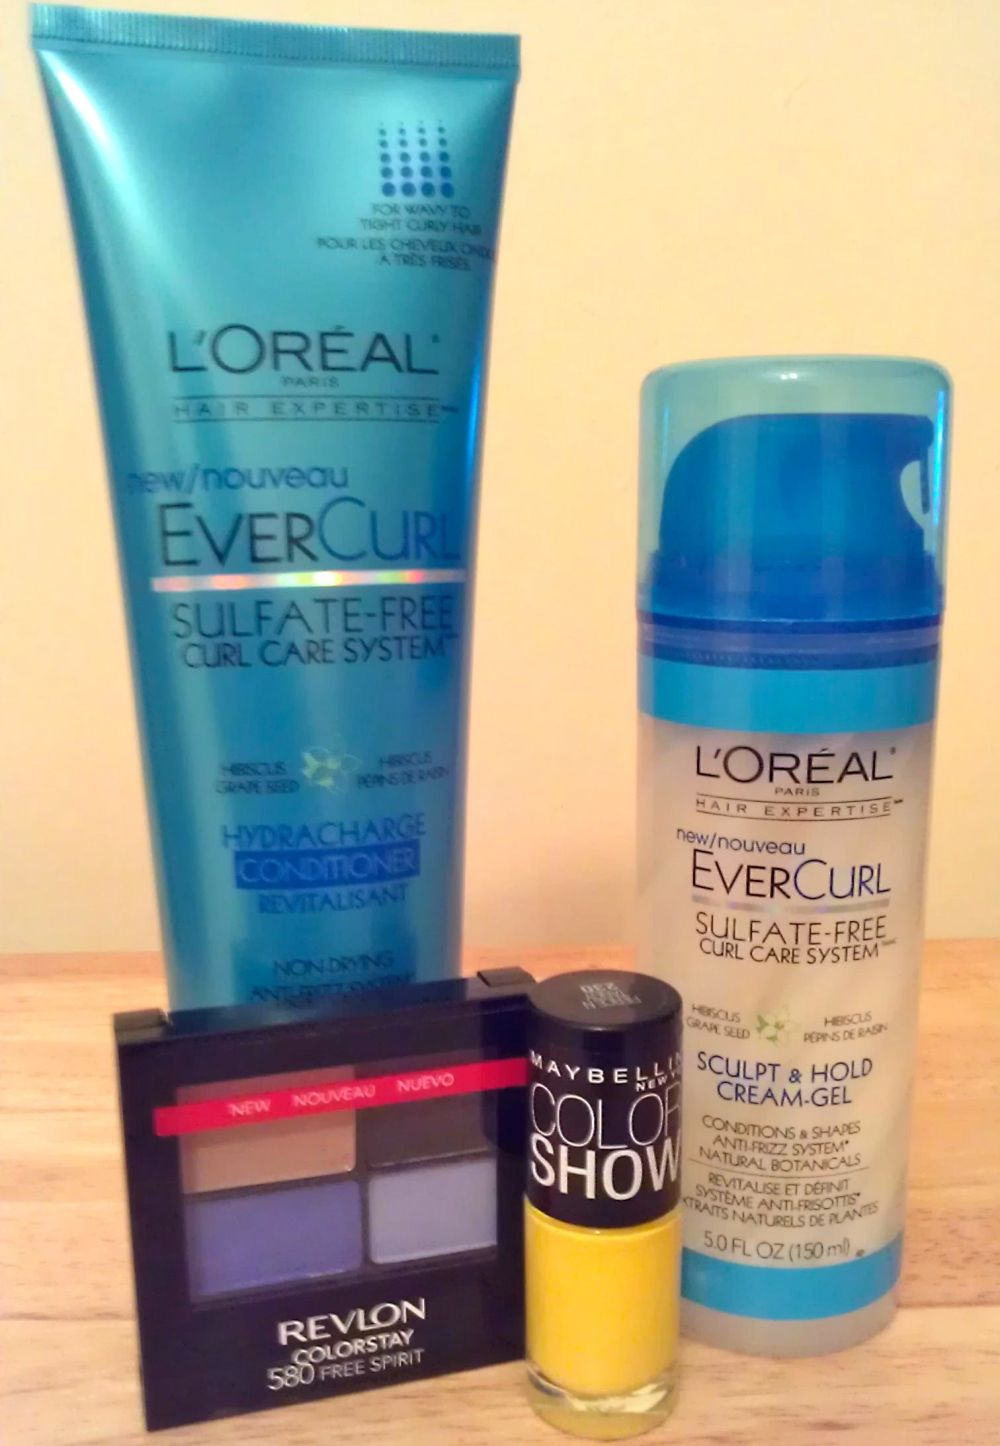 I also splurged on some new eyeshadow and nail polish when I picked up my L'Oreal products from Wal-Mart.